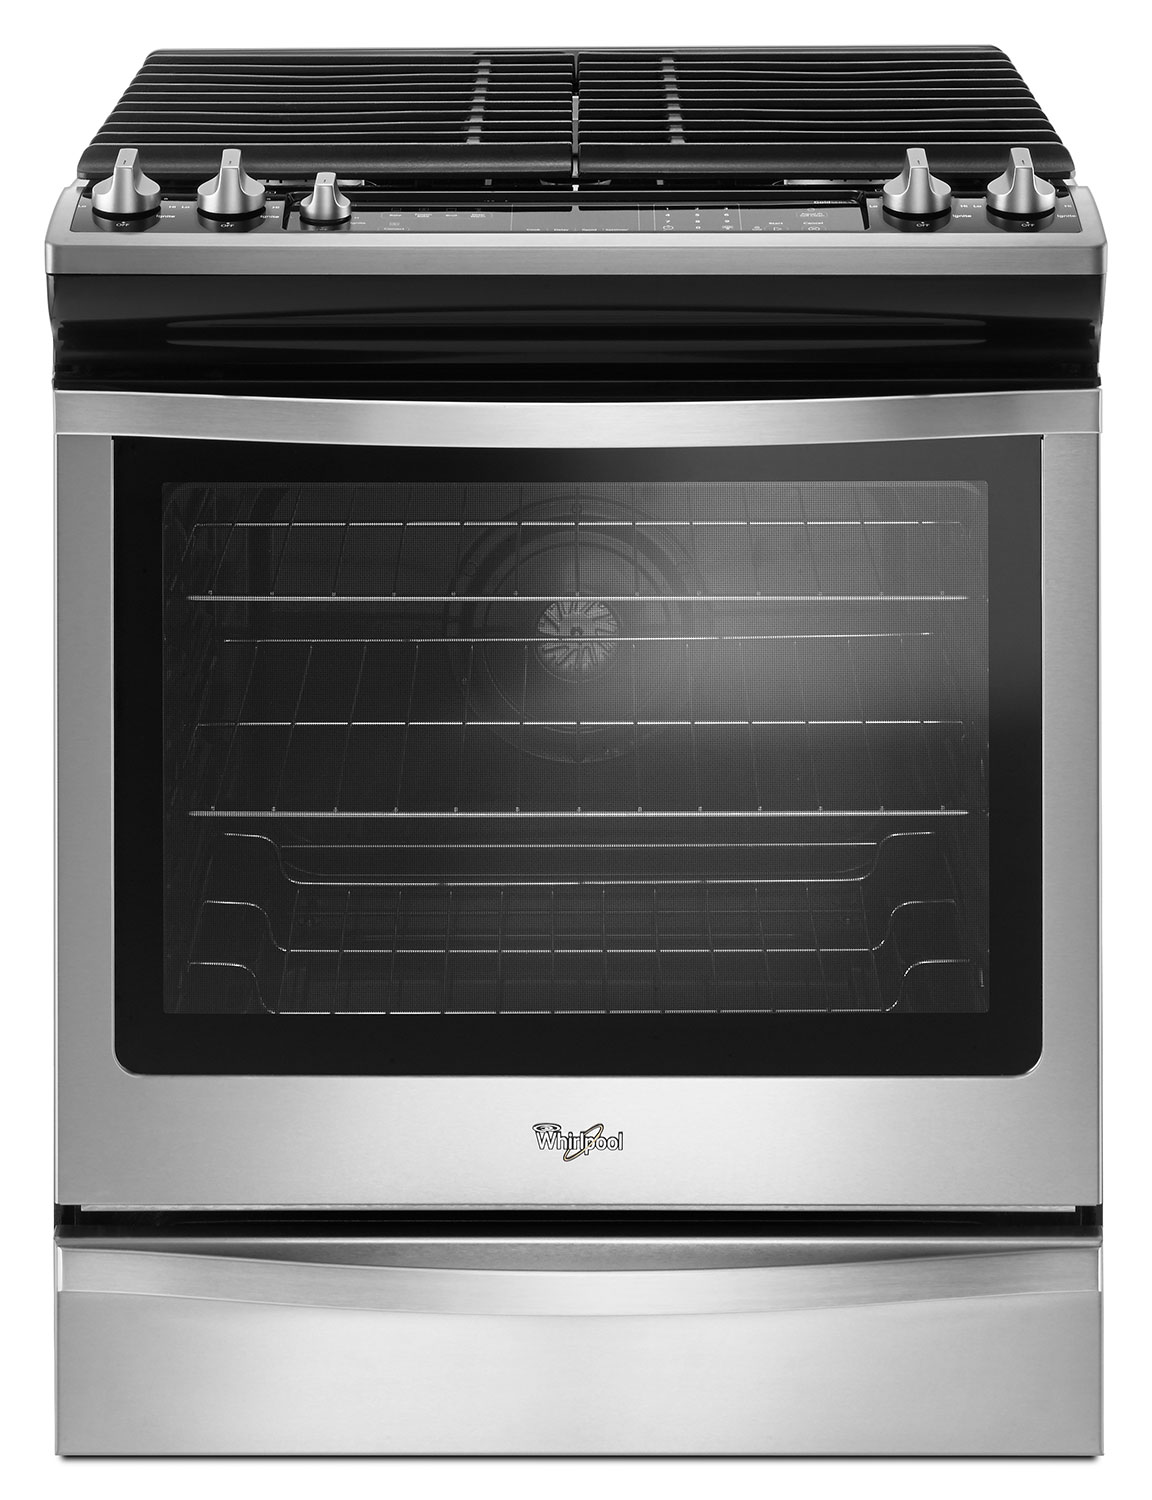 Cooking Products - Whirlpool Stainless Steel Slide-In Gas Range (5.8 Cu. Ft.) - WEG745H0FS